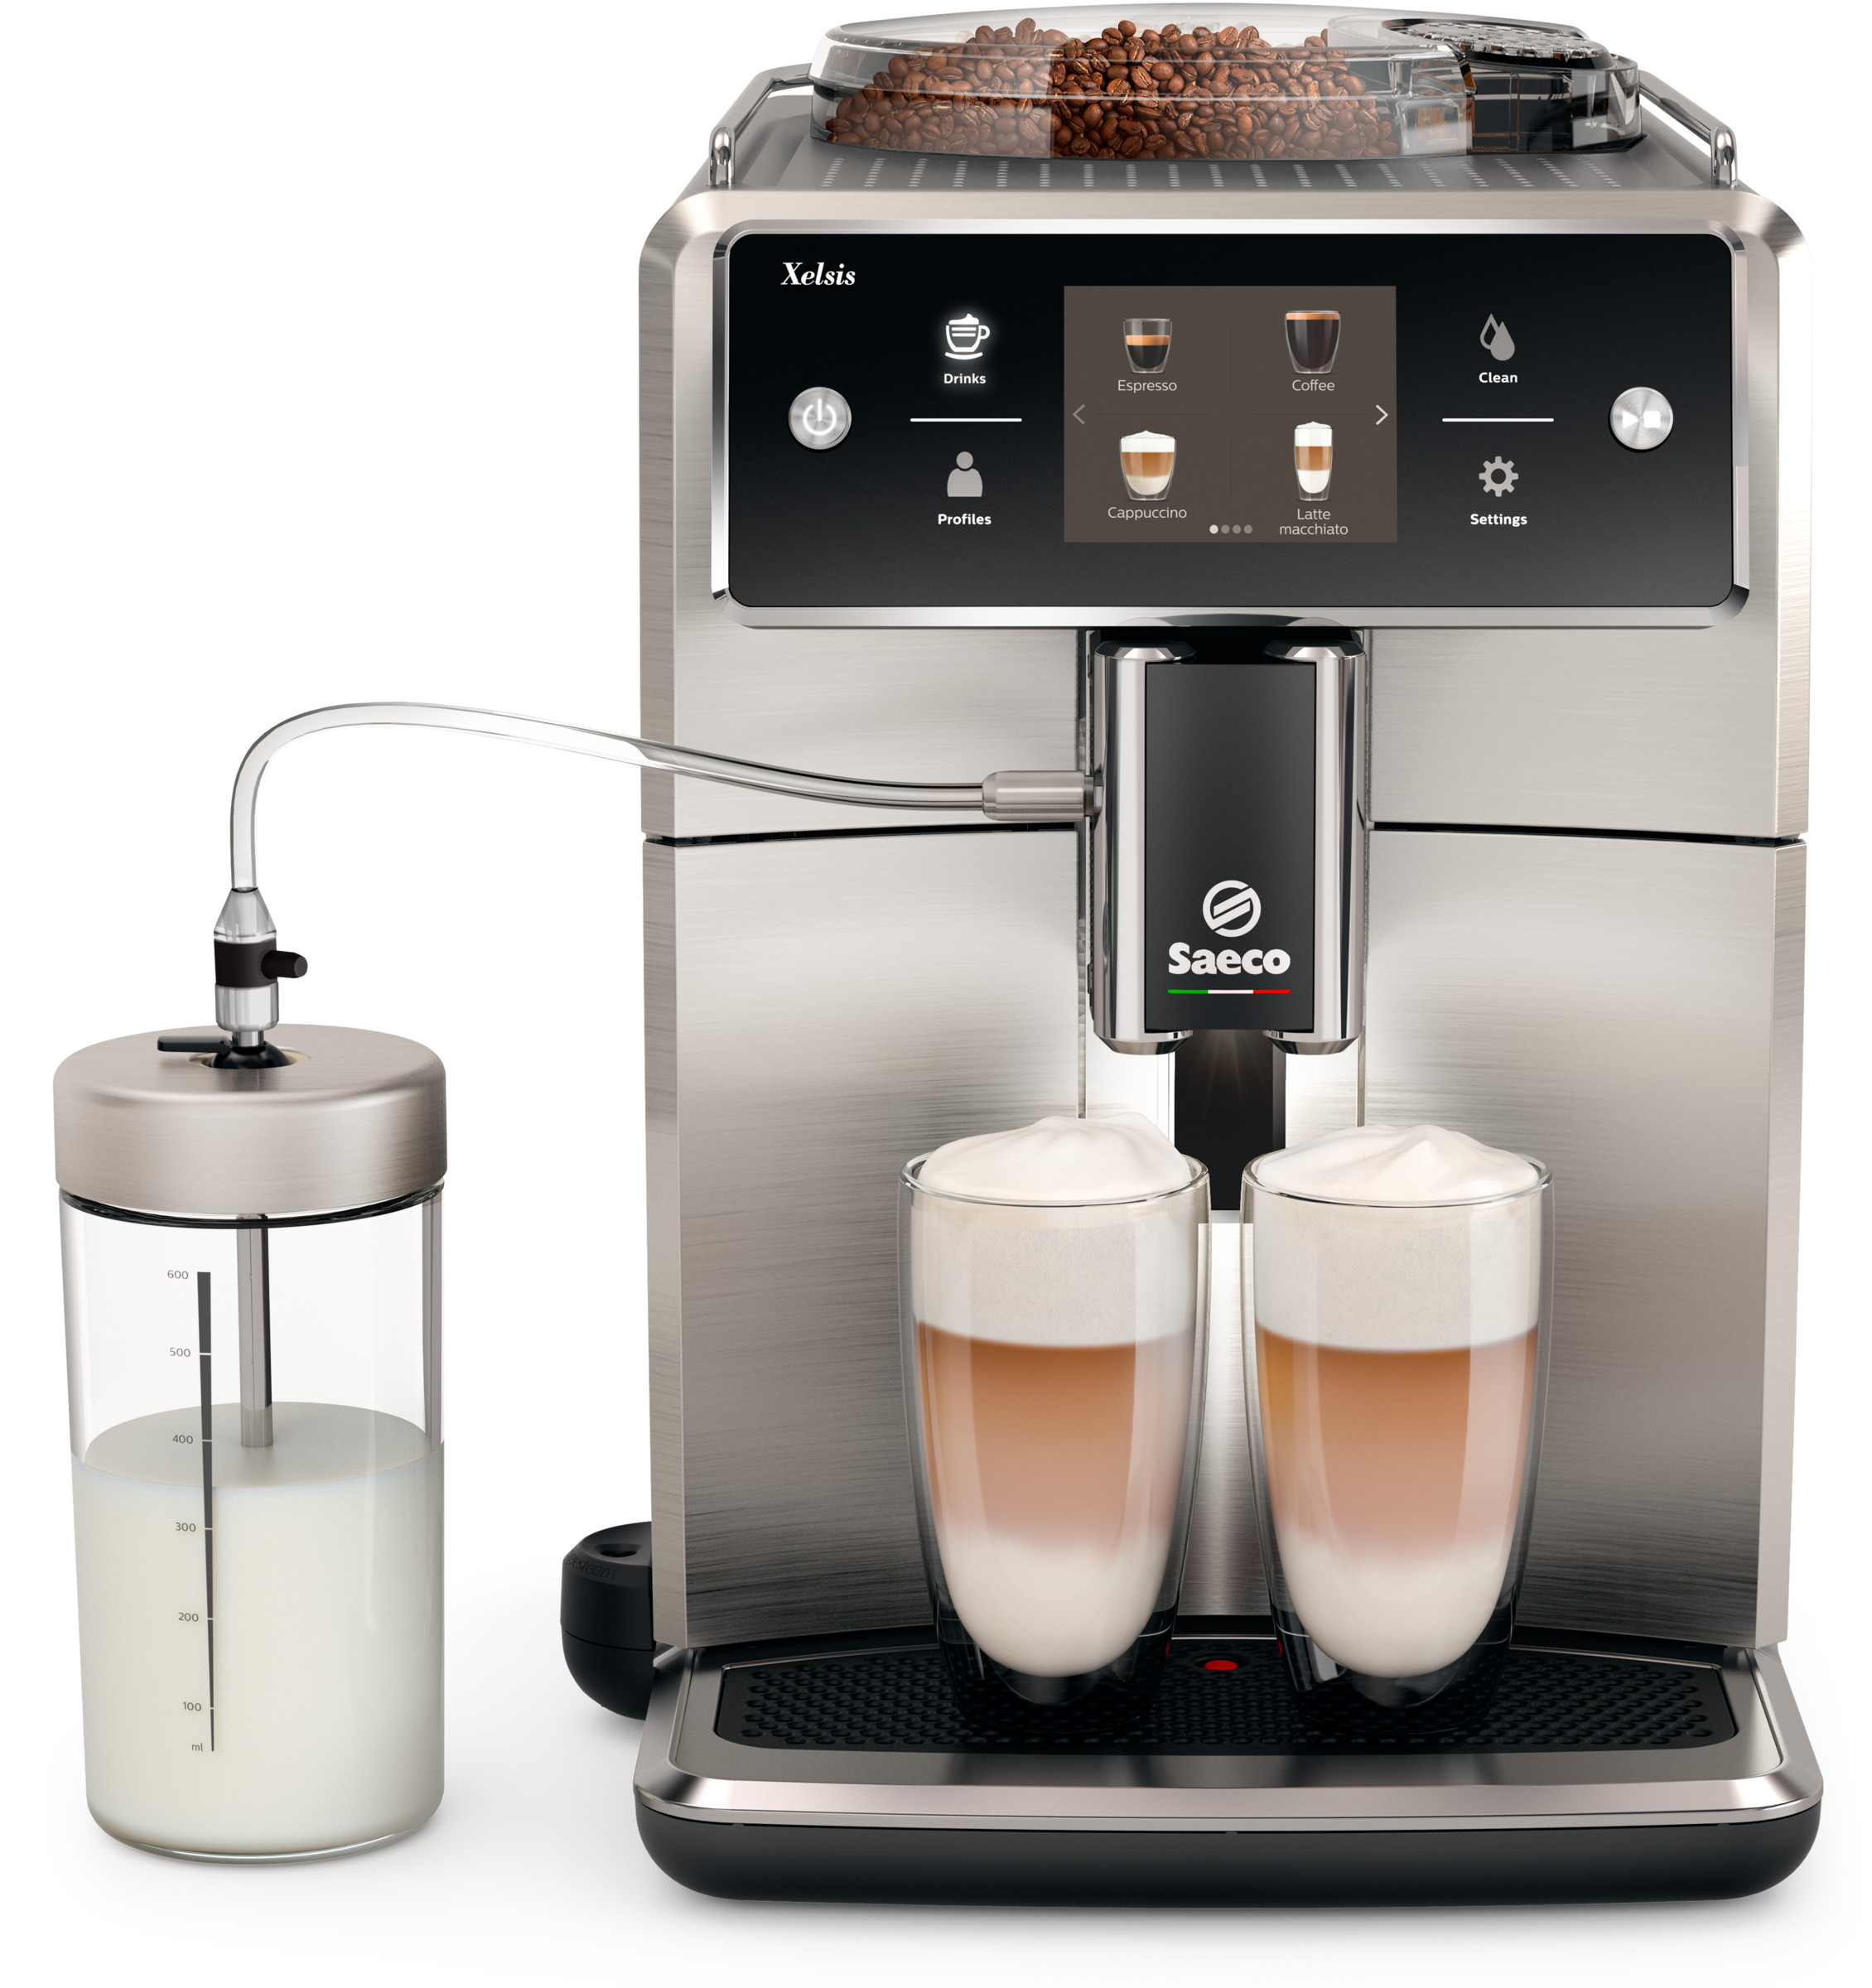 Philips Saeco SM7685/04 Xelsis Stainless Steel Coffee Machine